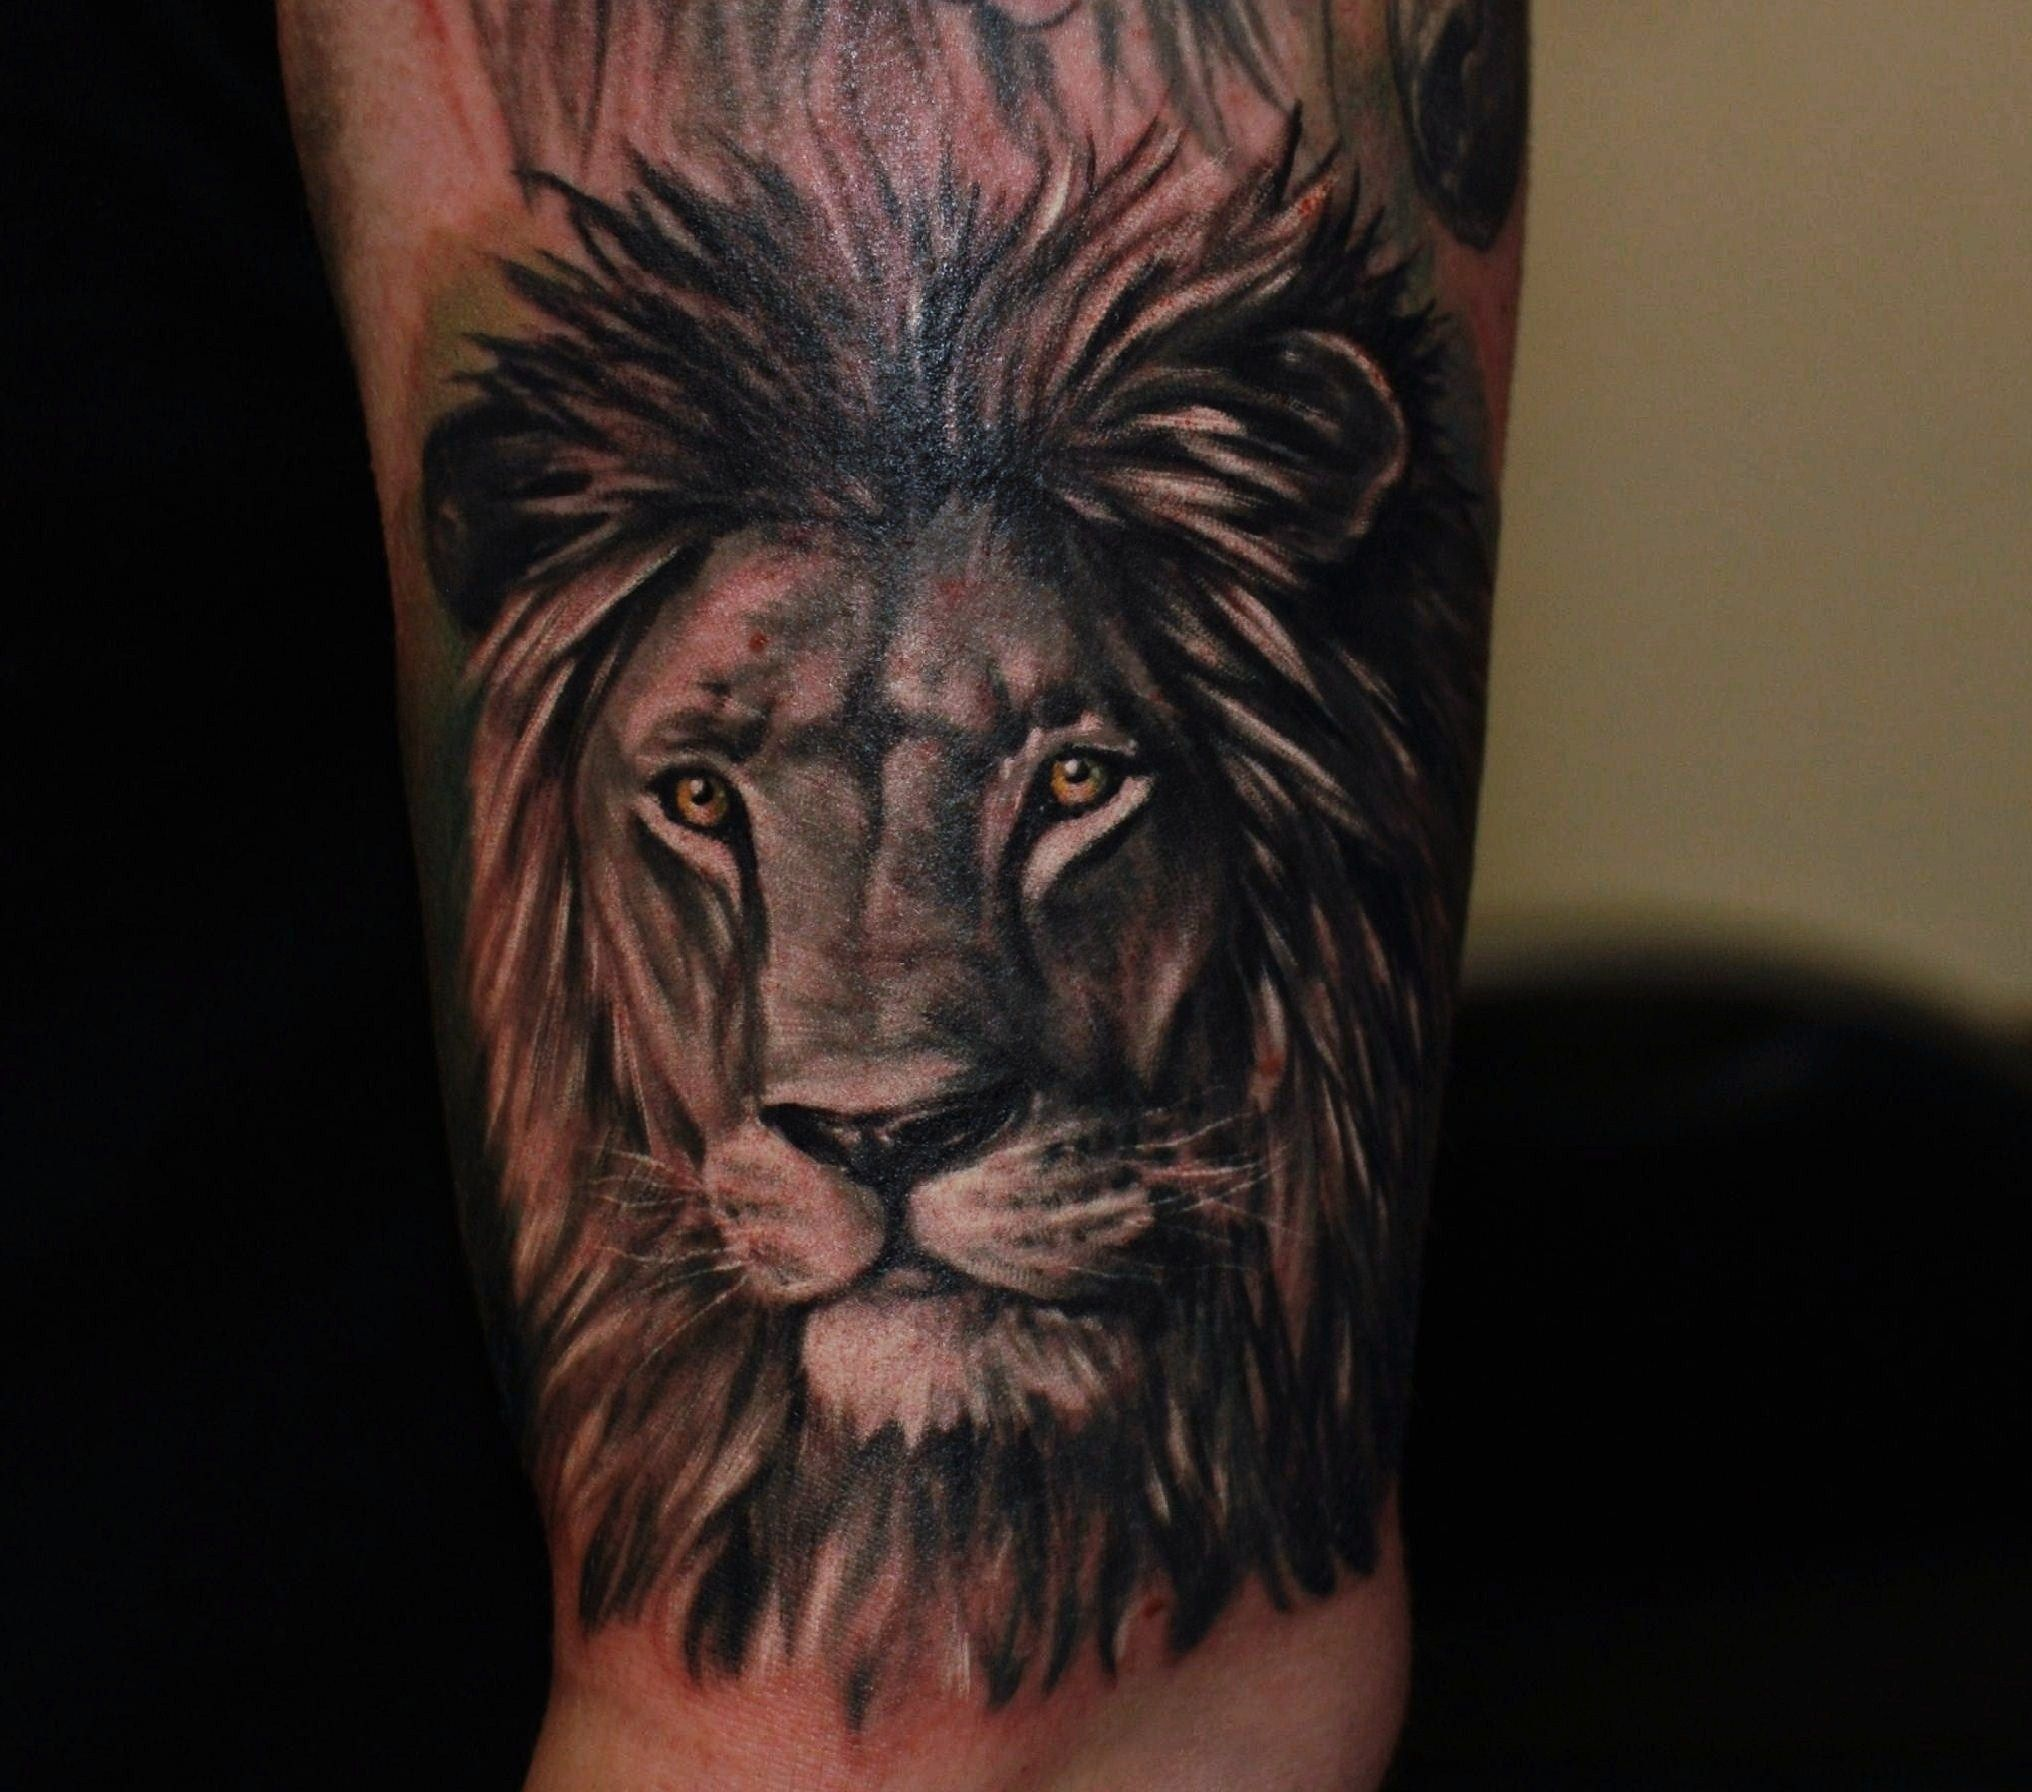 150 realistic lion tattoos and meanings 2017 collection -  Grey Lion Tattoo